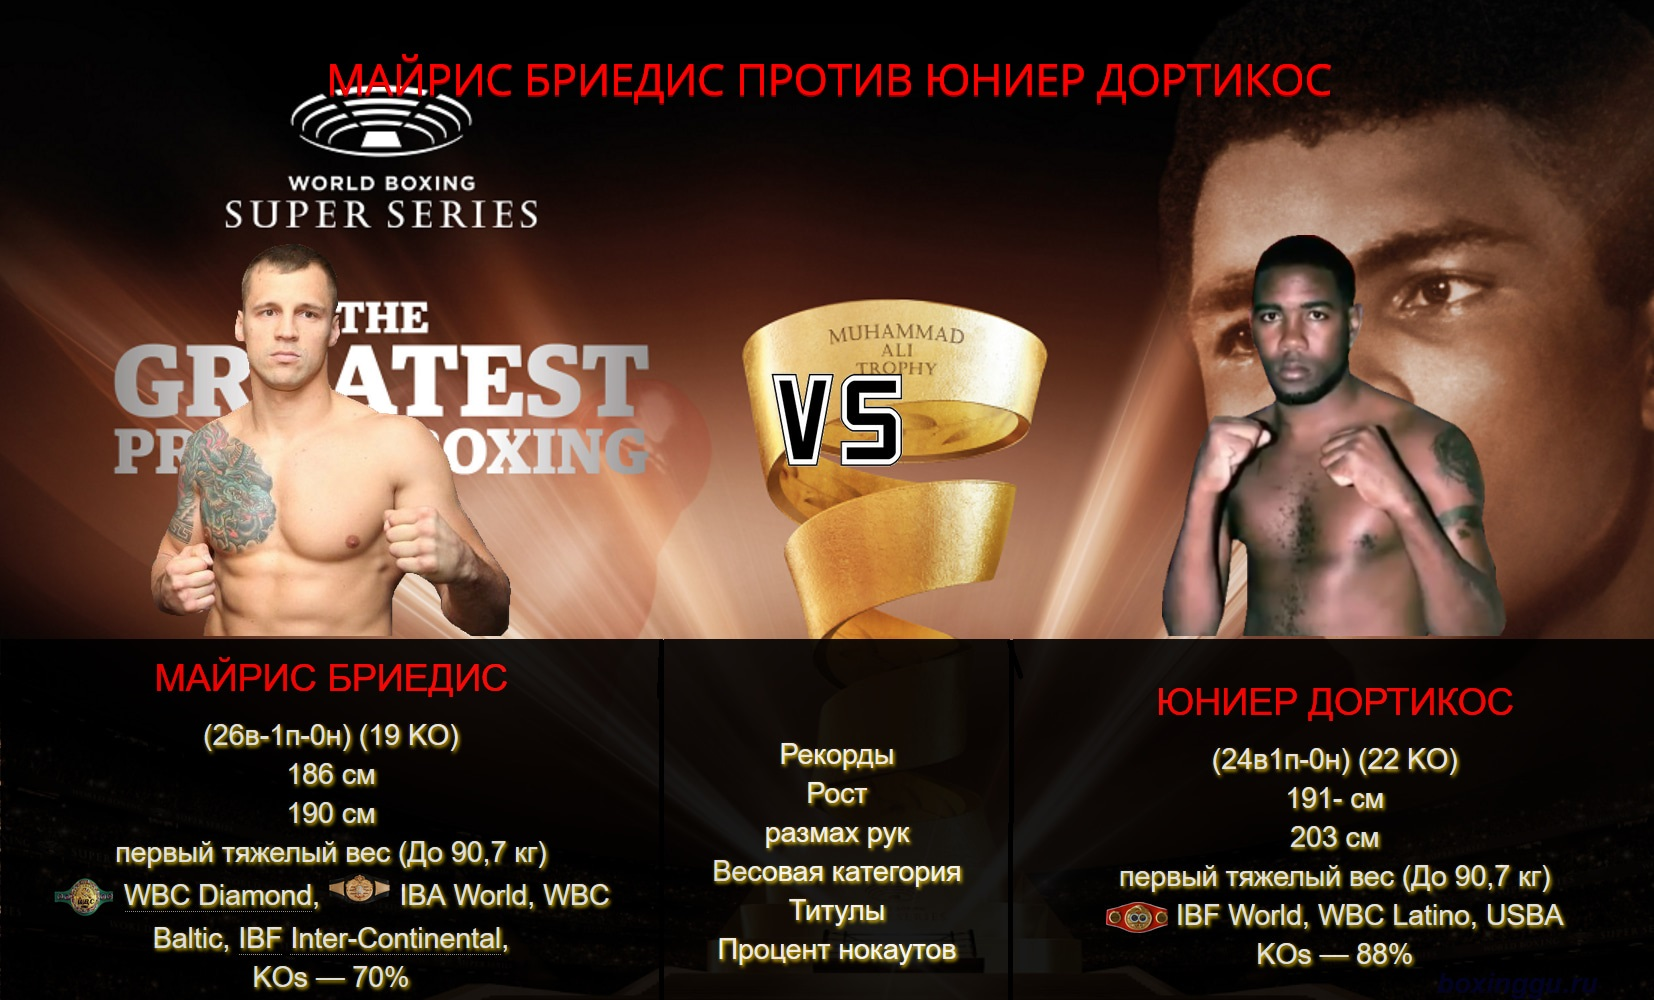 Майрис Бриедис - Юниер Дортикос / Yuniel Dorticos vs Mairis Briedis